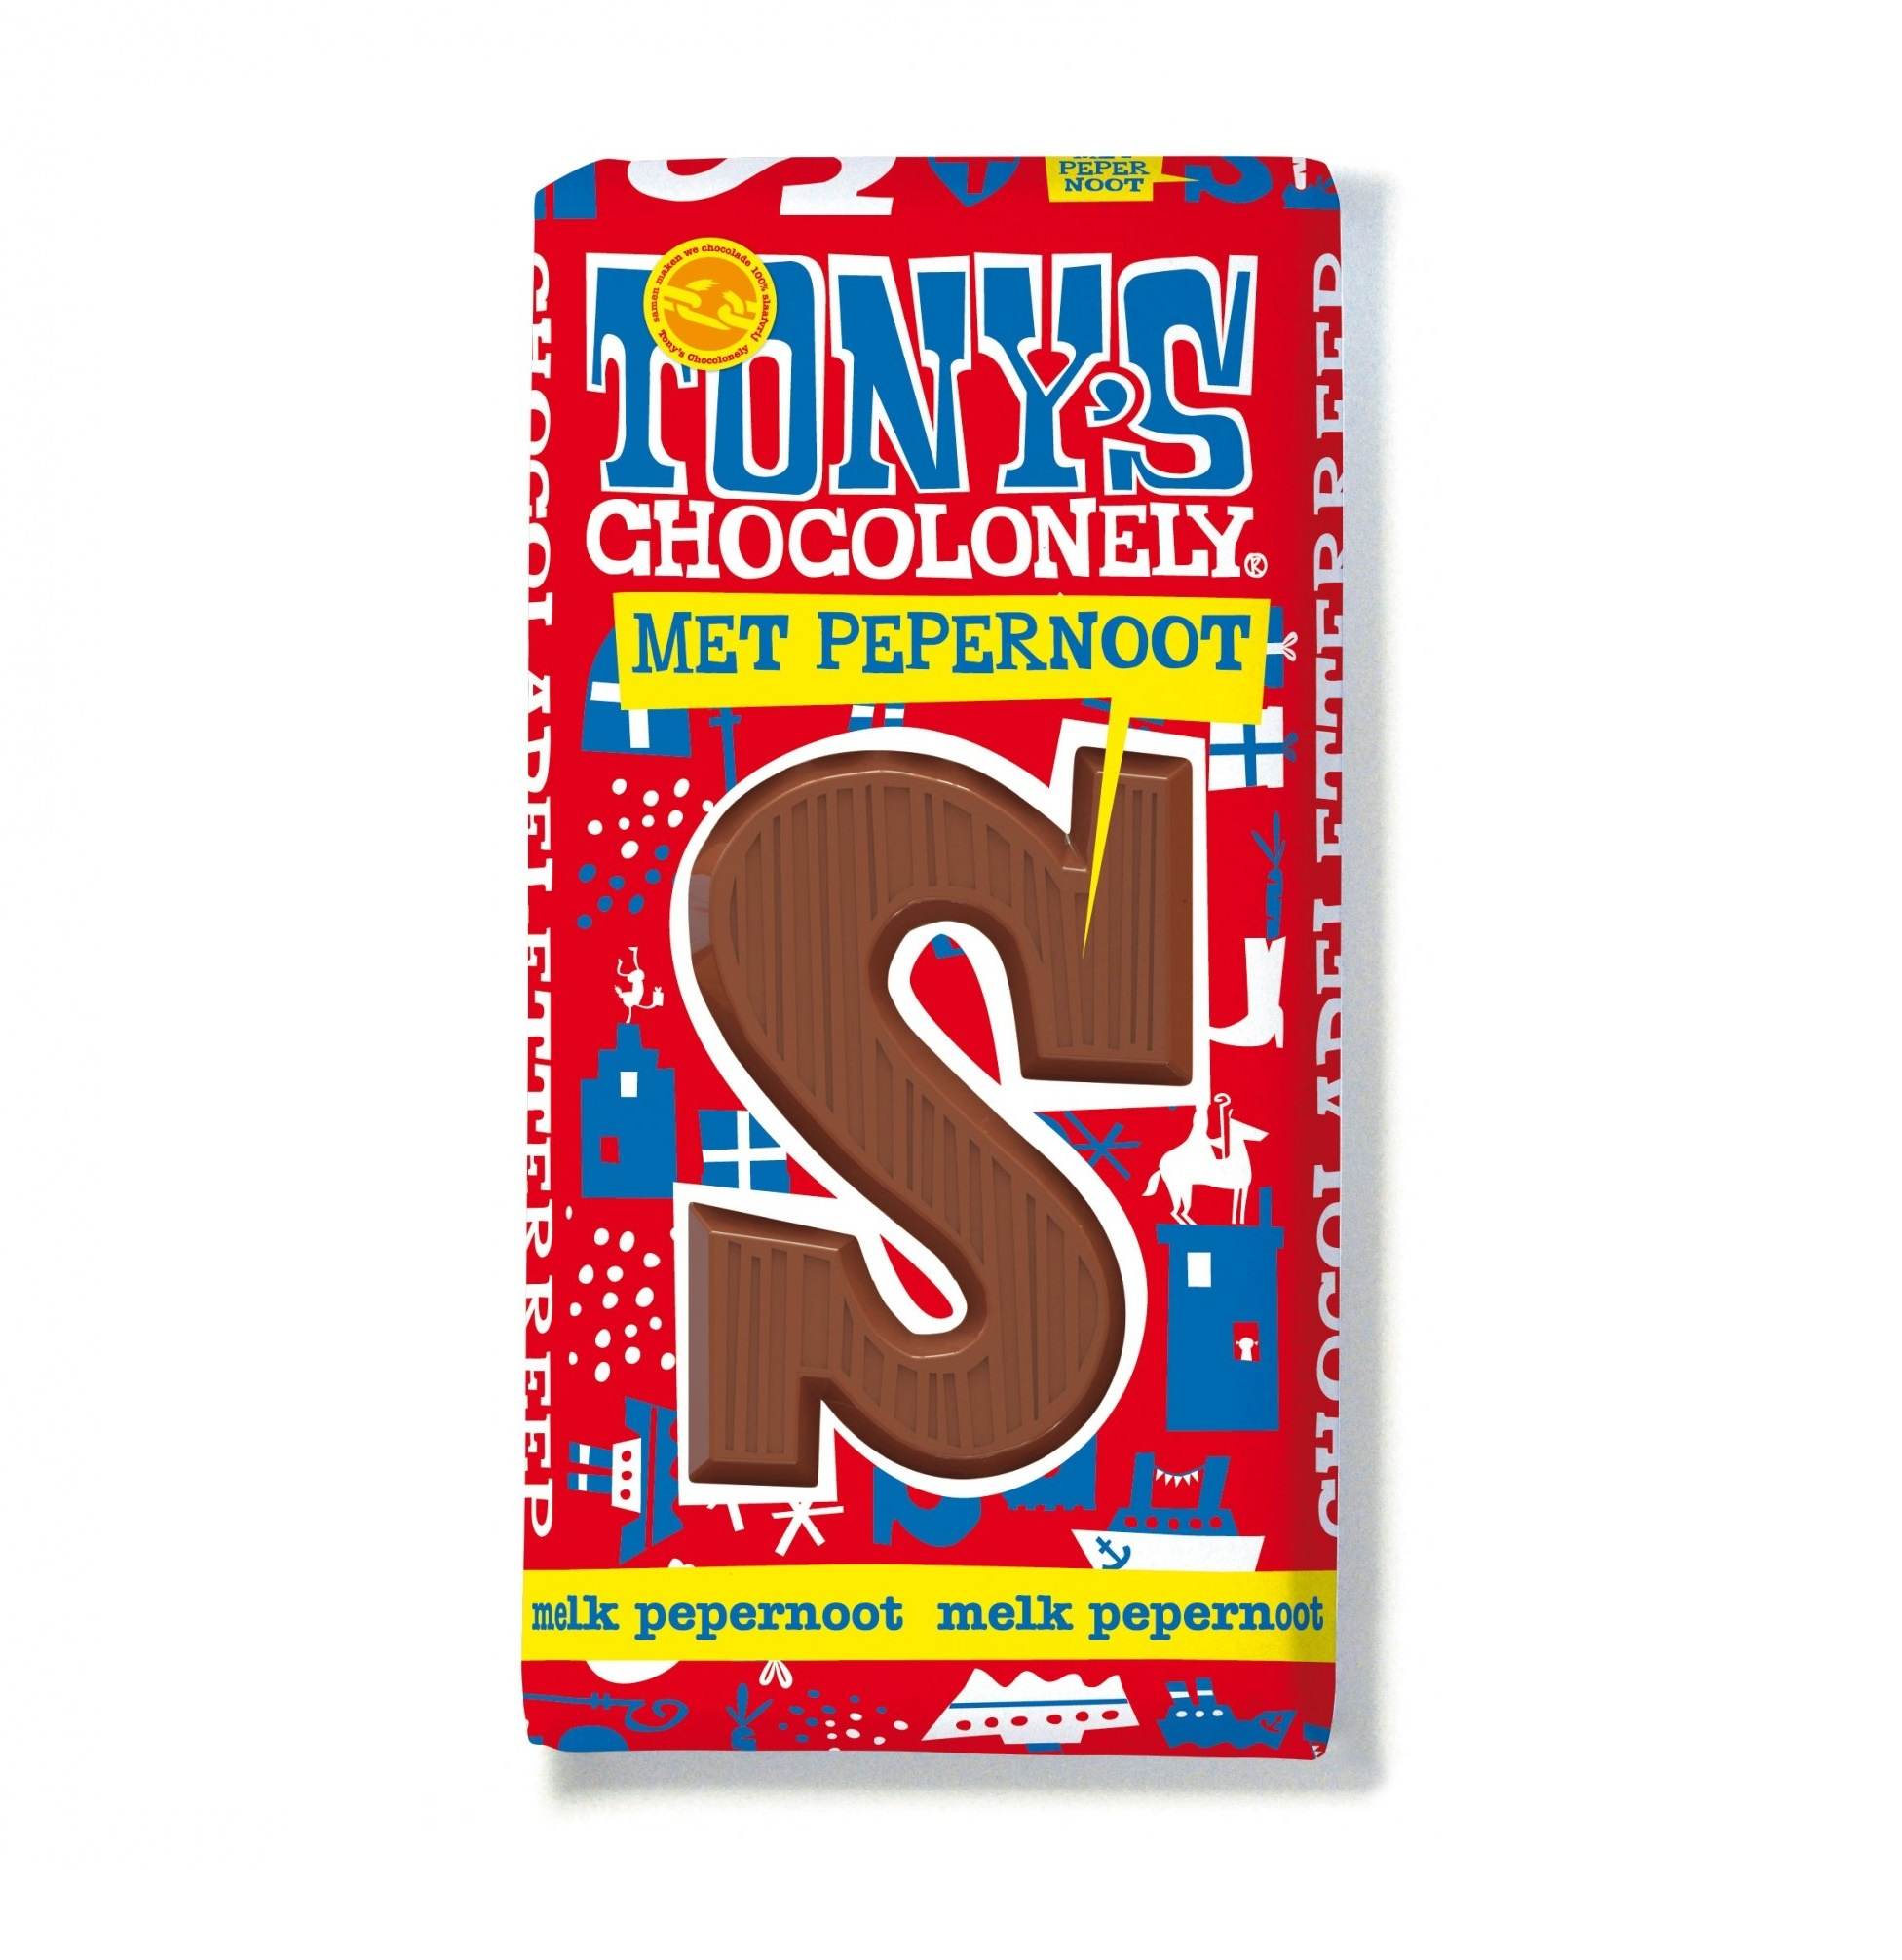 Tony's Chocolonely chocolate letters Melk pepernoot